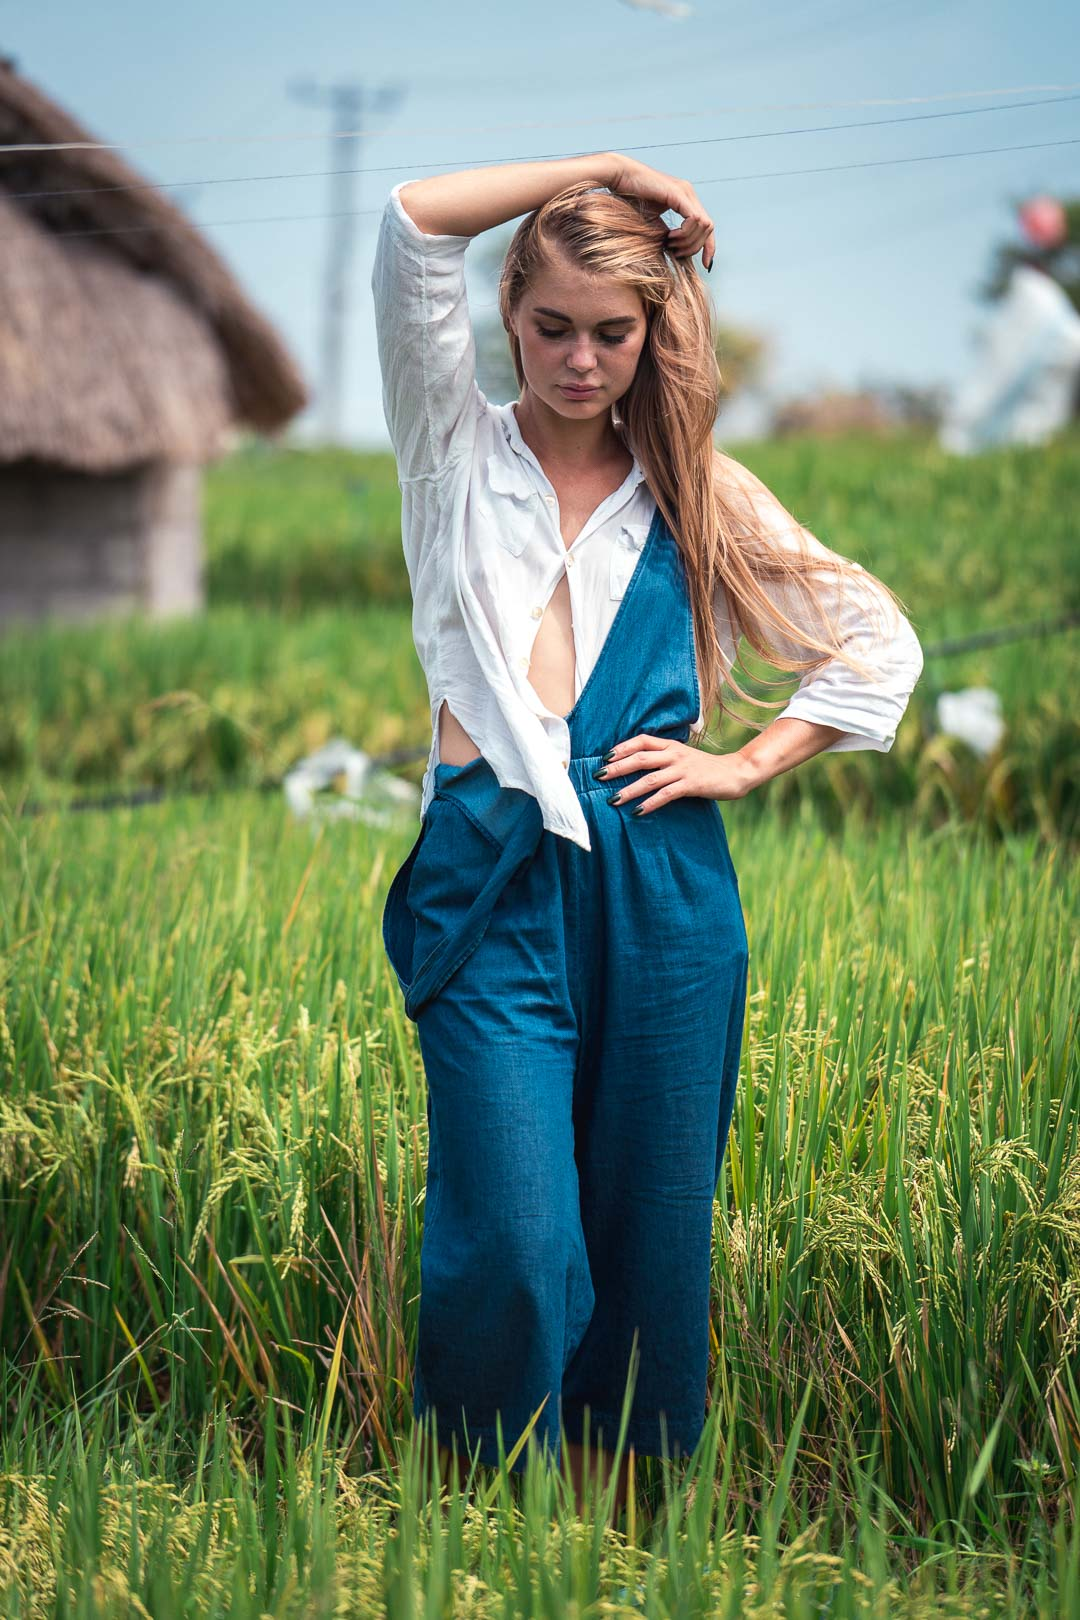 Blond woman in blue overalls standing in a rice field